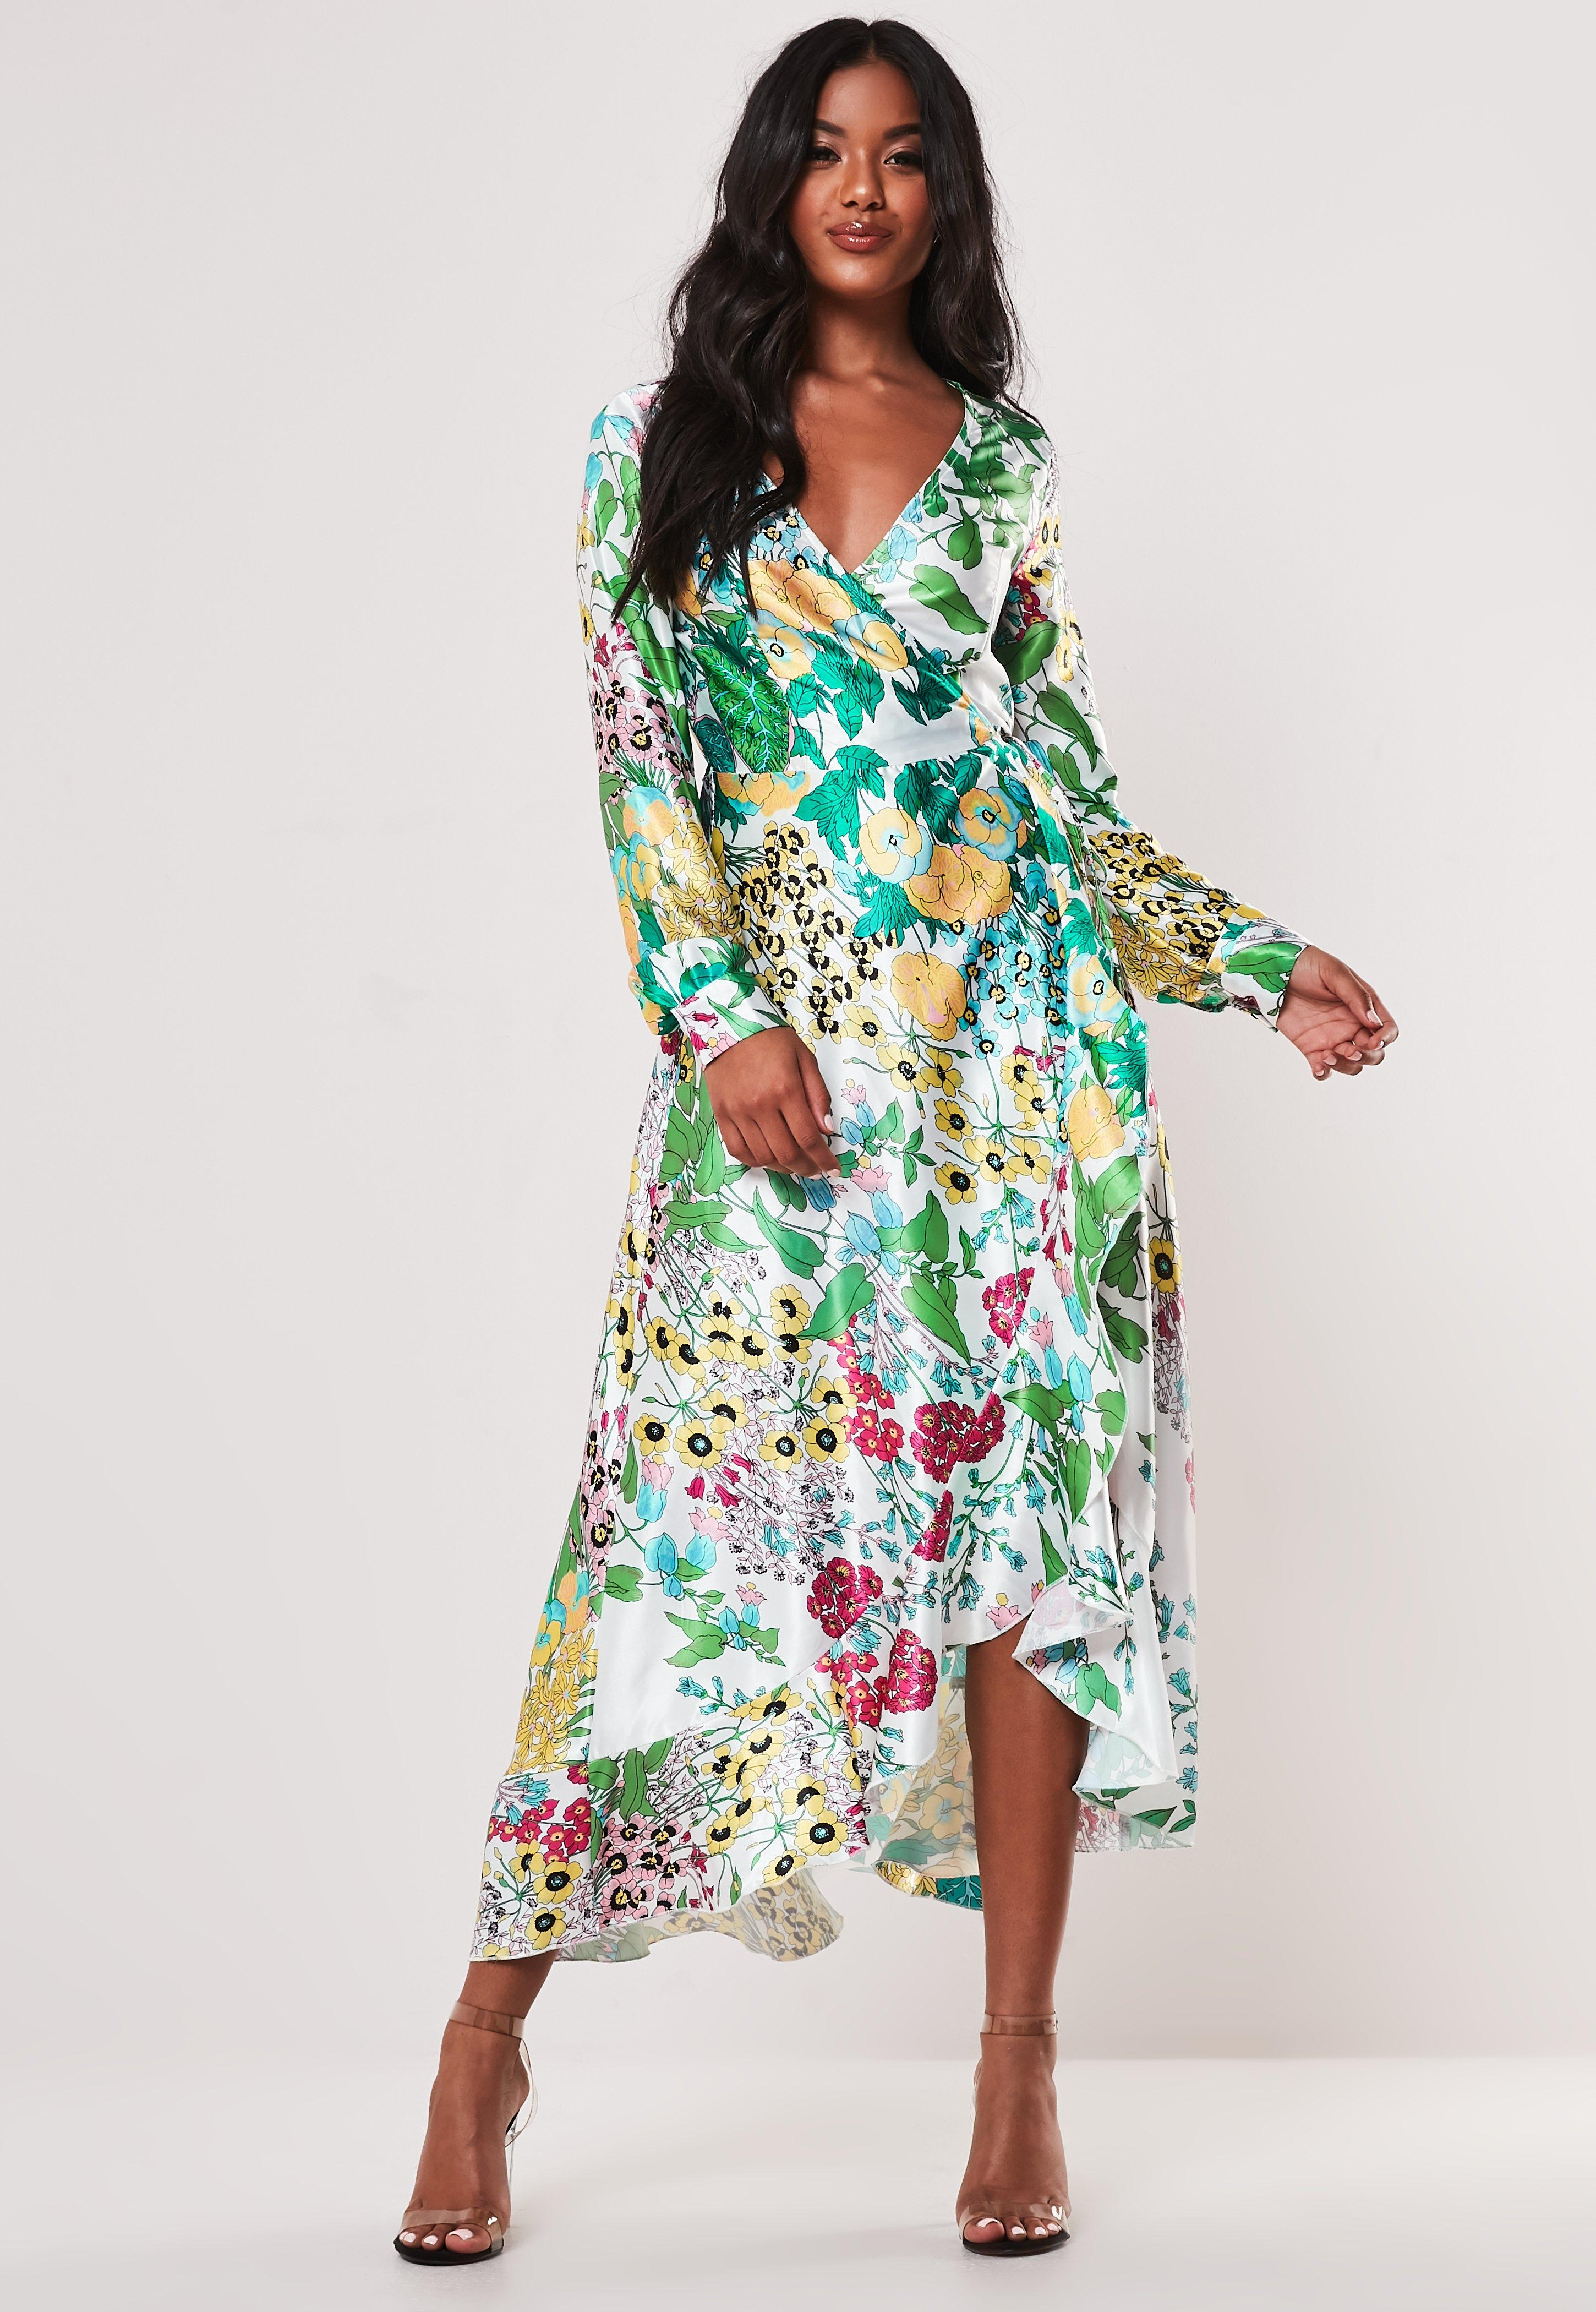 bbdb79fcf028 Floral Dresses - Flowery & Printed Dresses Online | Missguided